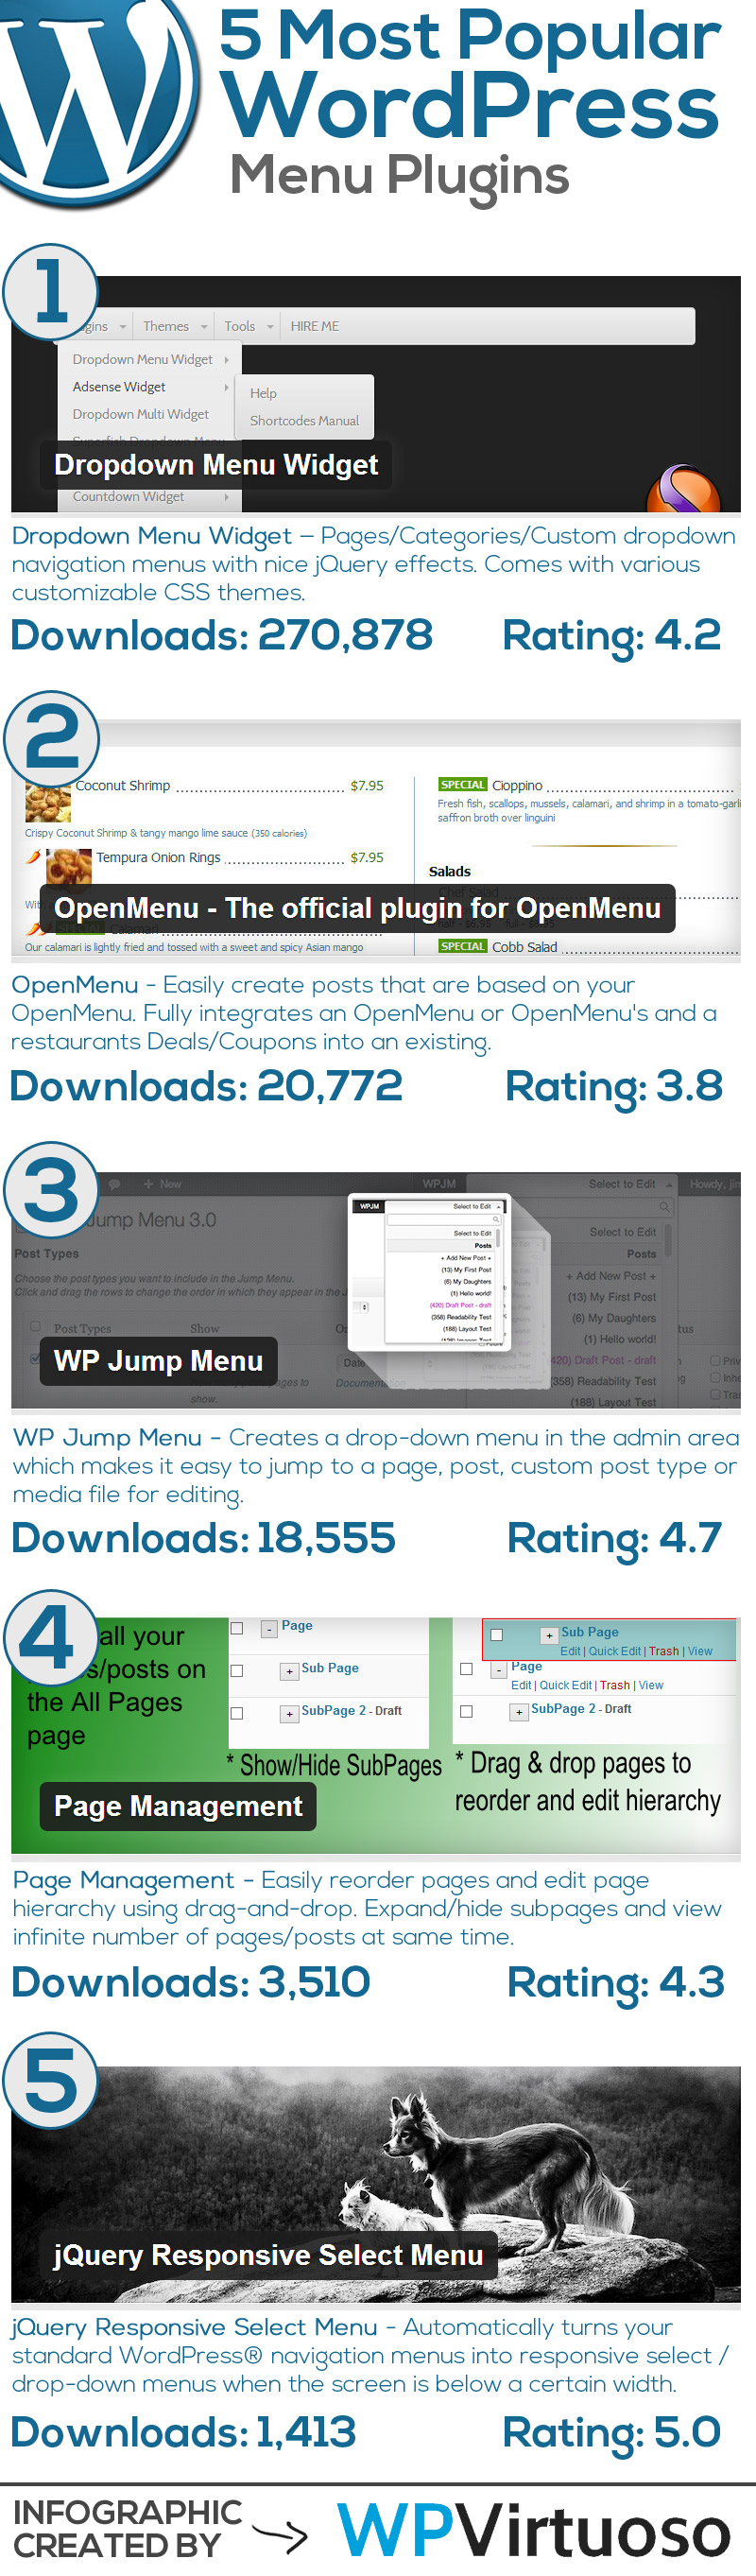 Best-Wordpress-Menu-Plugins-Infographic